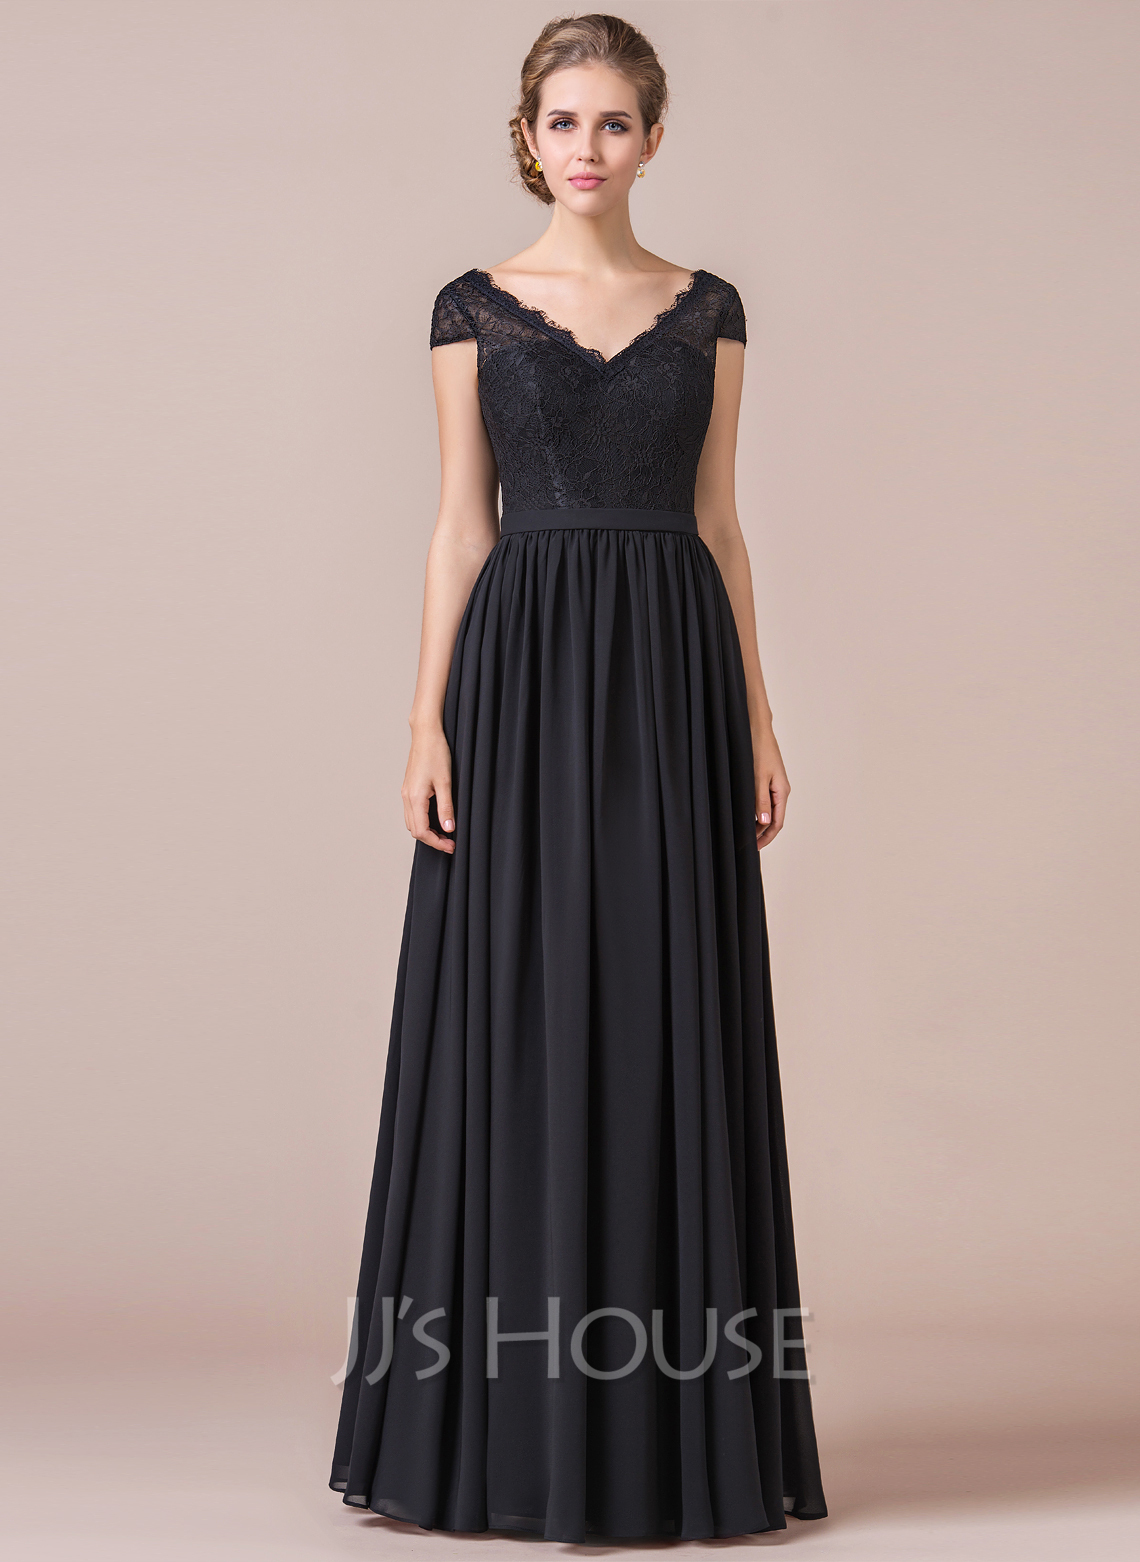 A lineprincess v neck floor length chiffon lace bridesmaid dress a lineprincess v neck floor length chiffon lace bridesmaid dress loading zoom ombrellifo Image collections